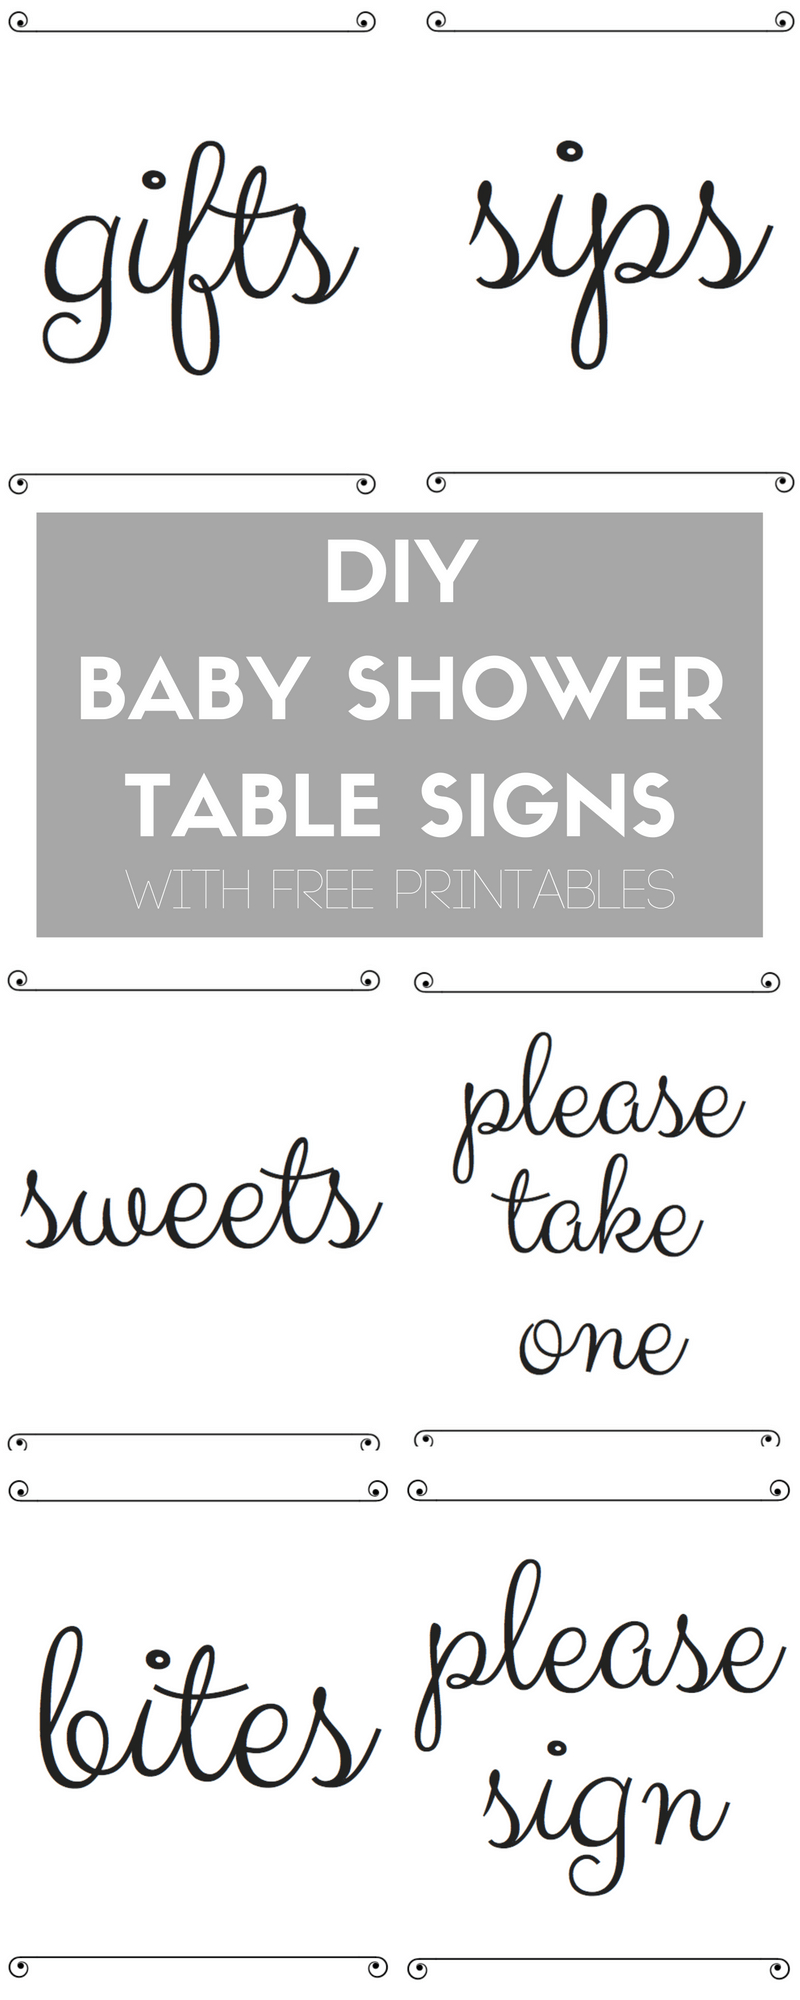 Diy Baby Shower Table Signs With Free Printables | Best Of The Blog - Free Woodland Baby Shower Printables